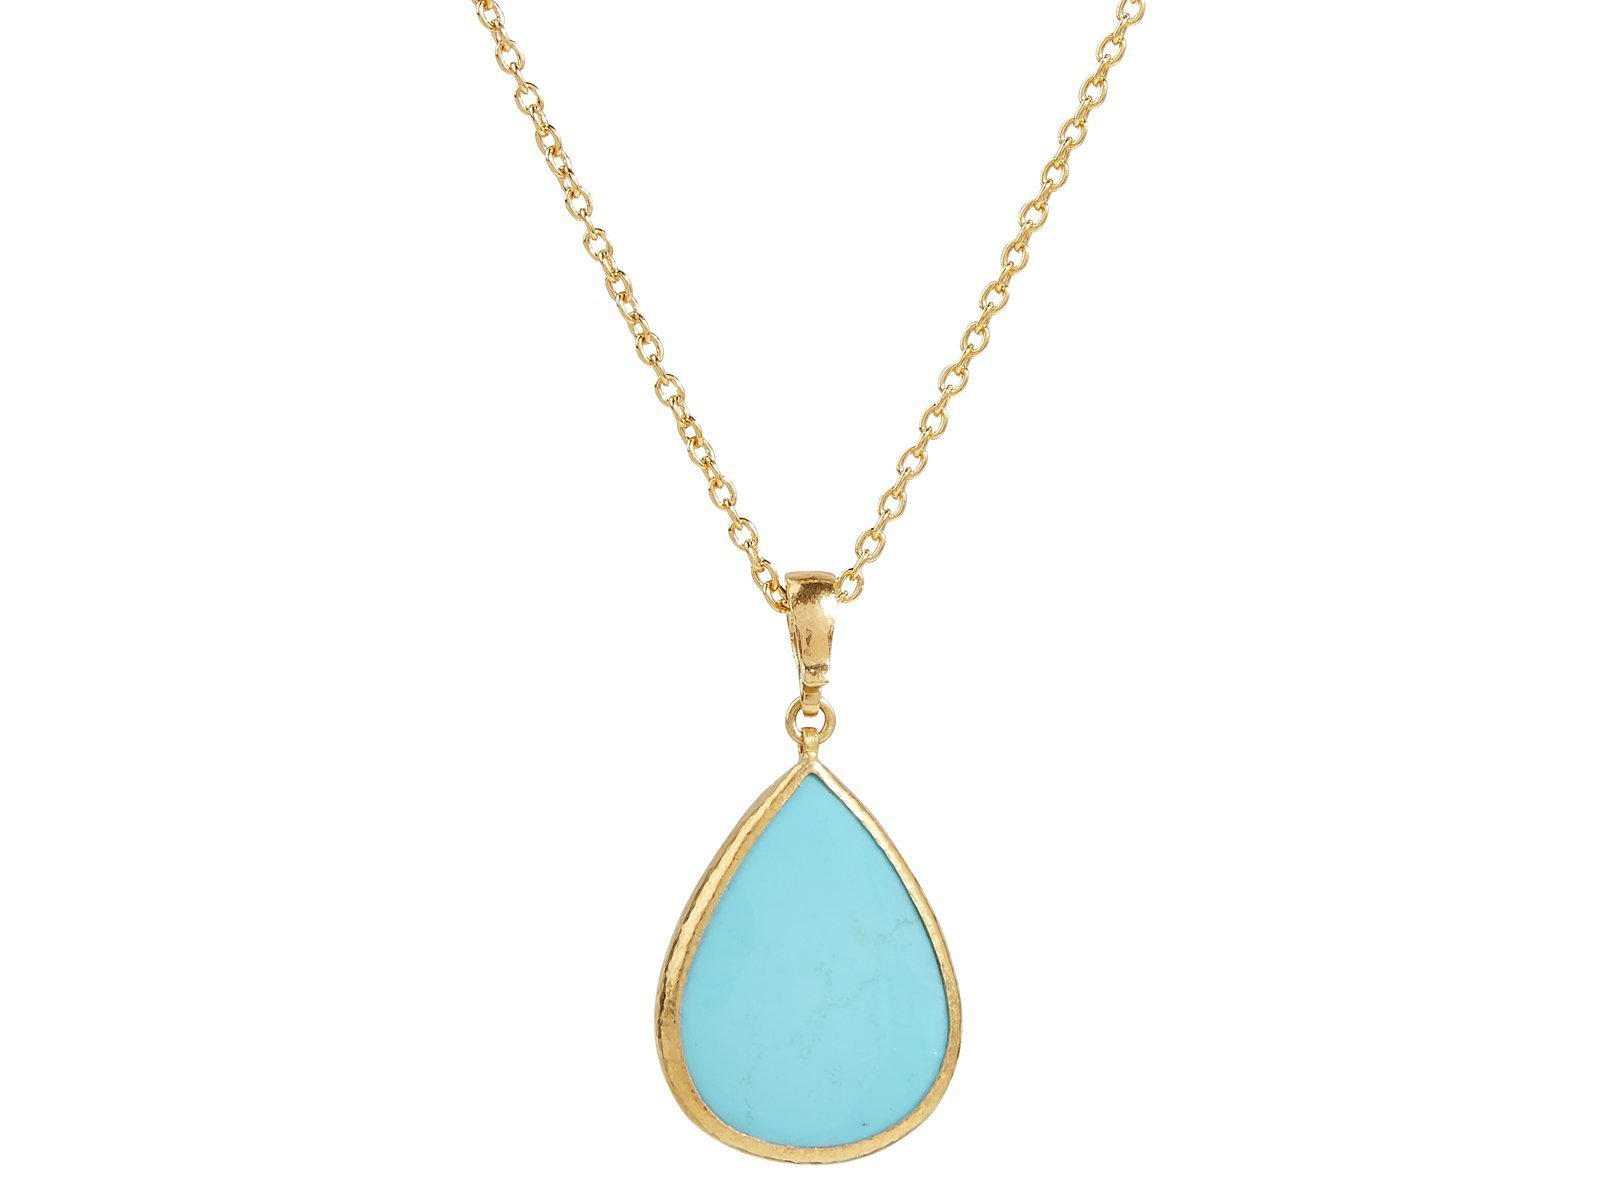 Gurhan 24K Yellow Gold 10.6cts  Turquoise Gold Necklace with Stones OKN-YG-TQ18-2433